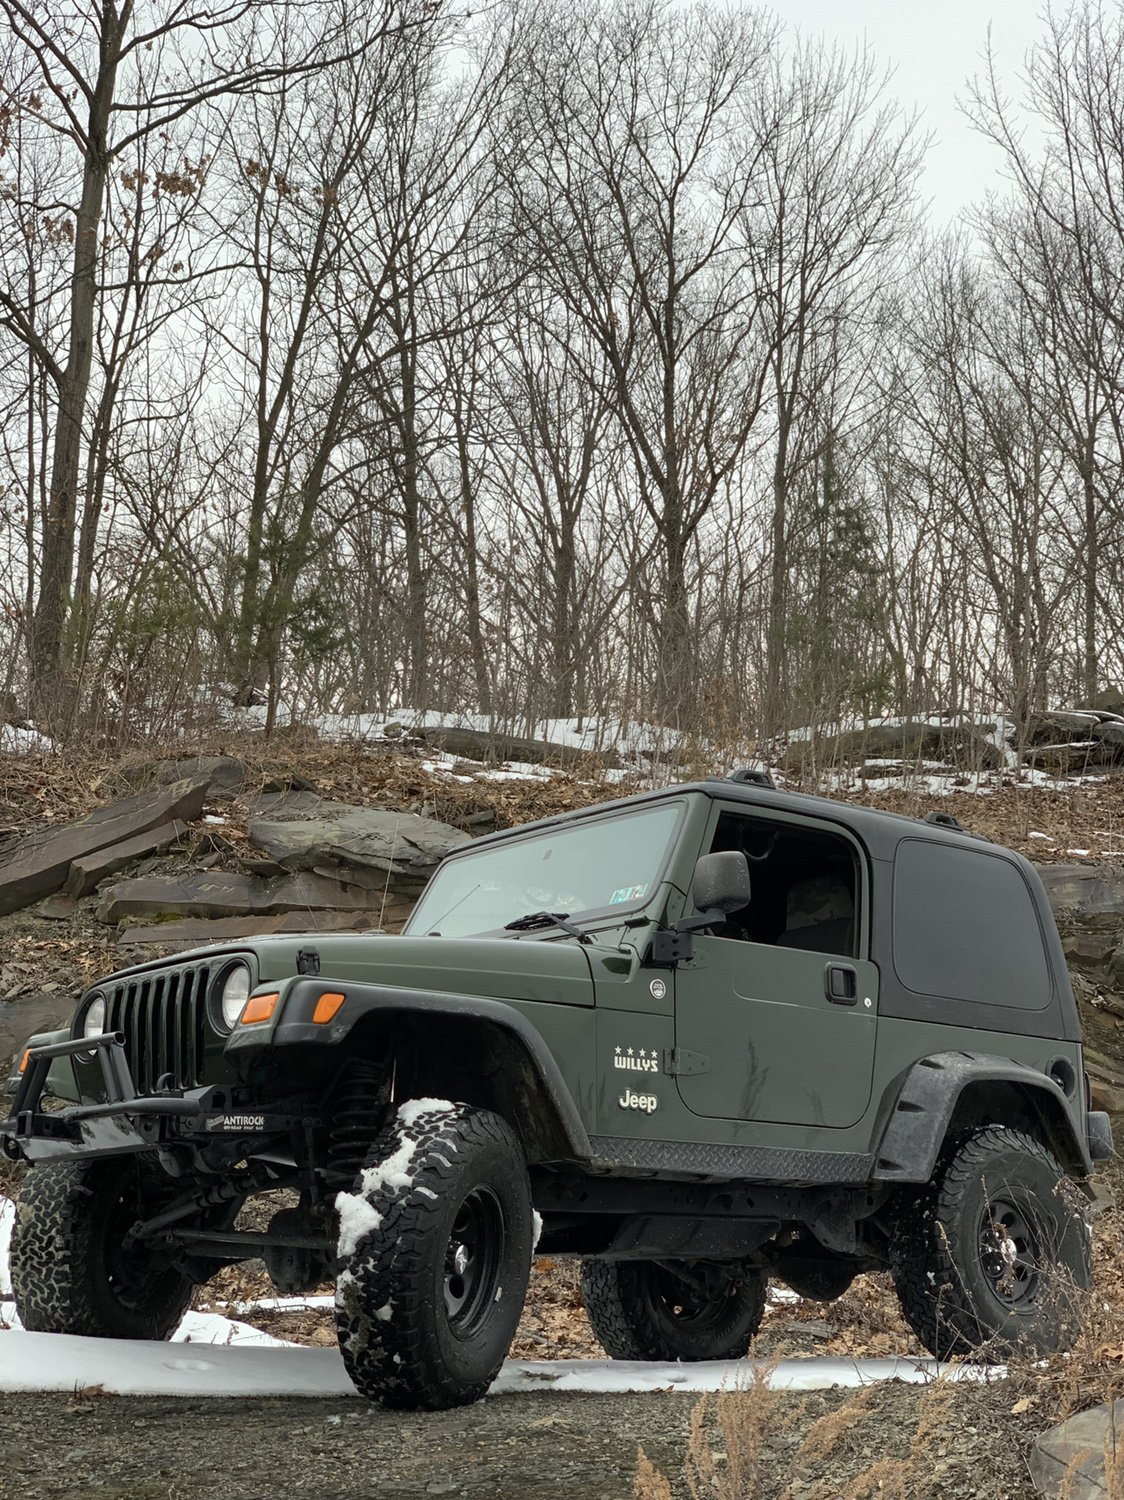 Forest Green Jeep : forest, green, Accent, Color?, Wrangler, Forum